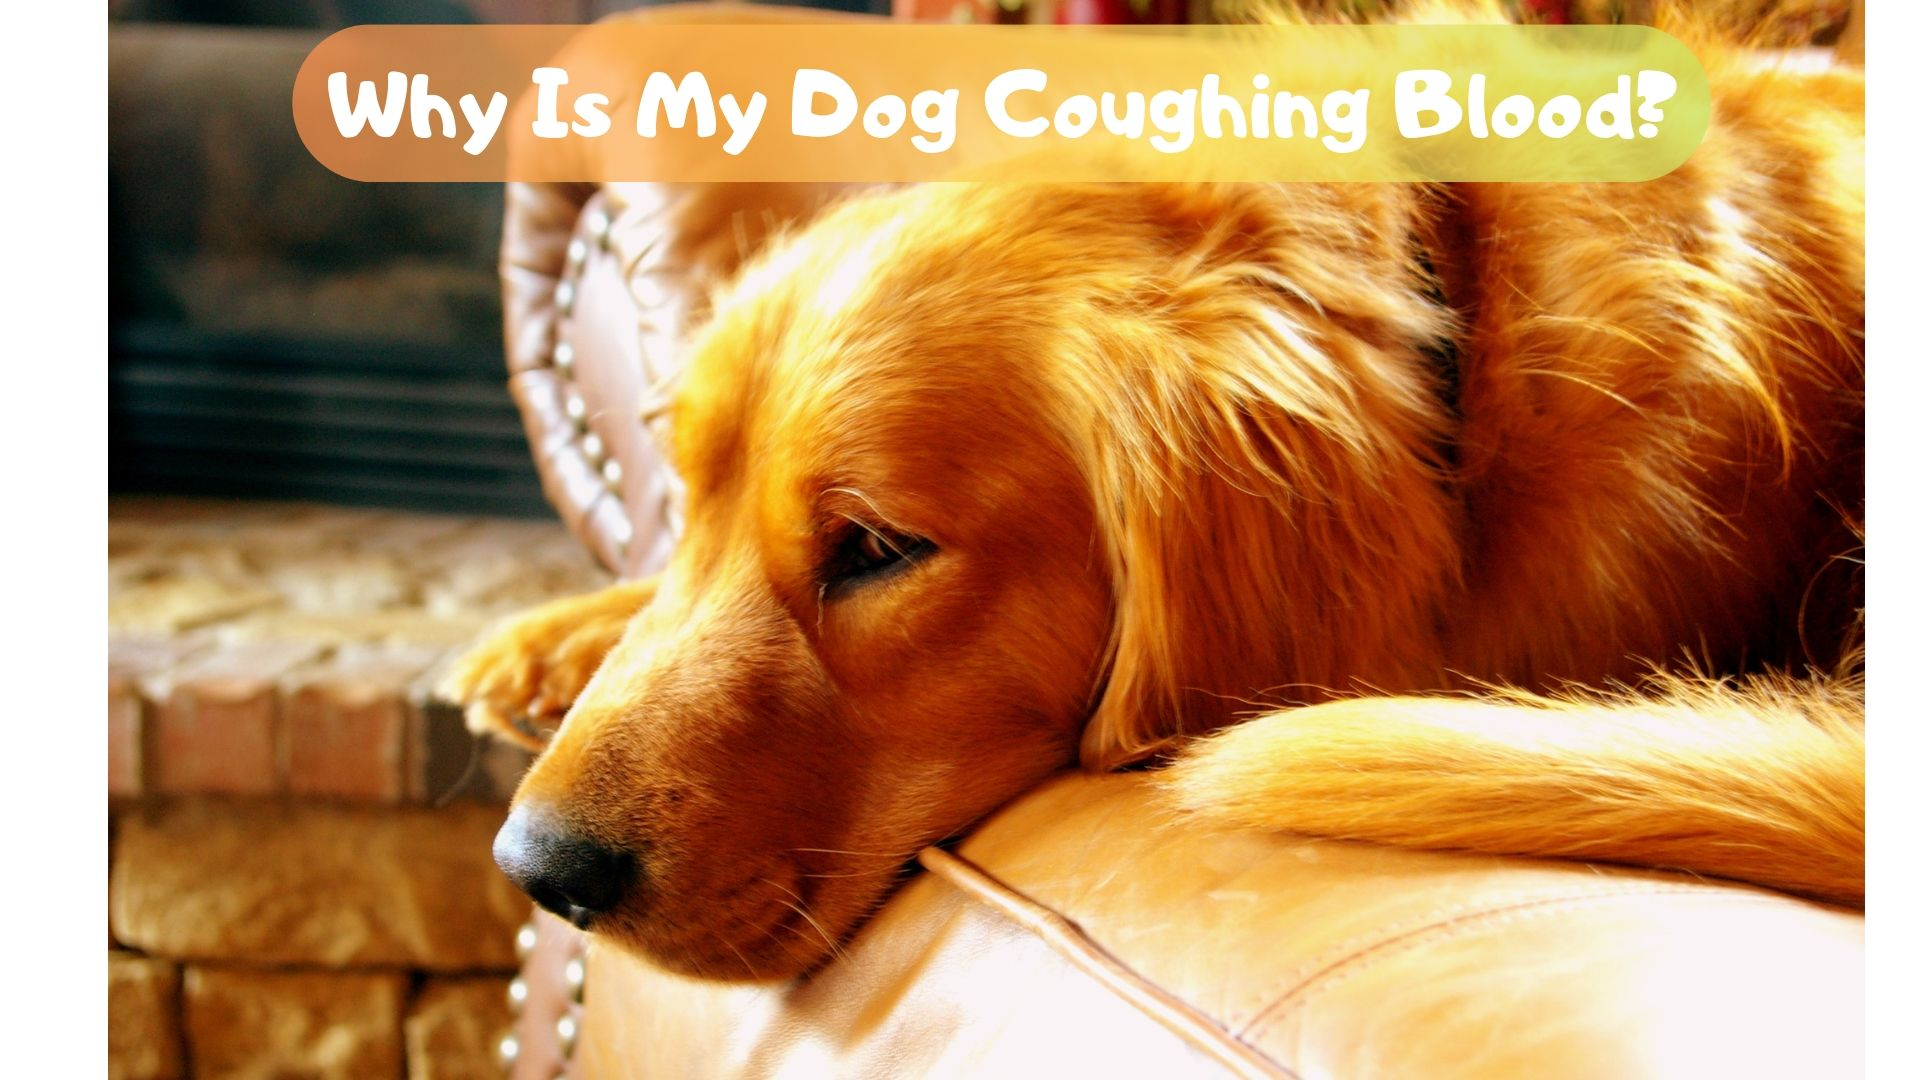 Why is my dog coughing blood?